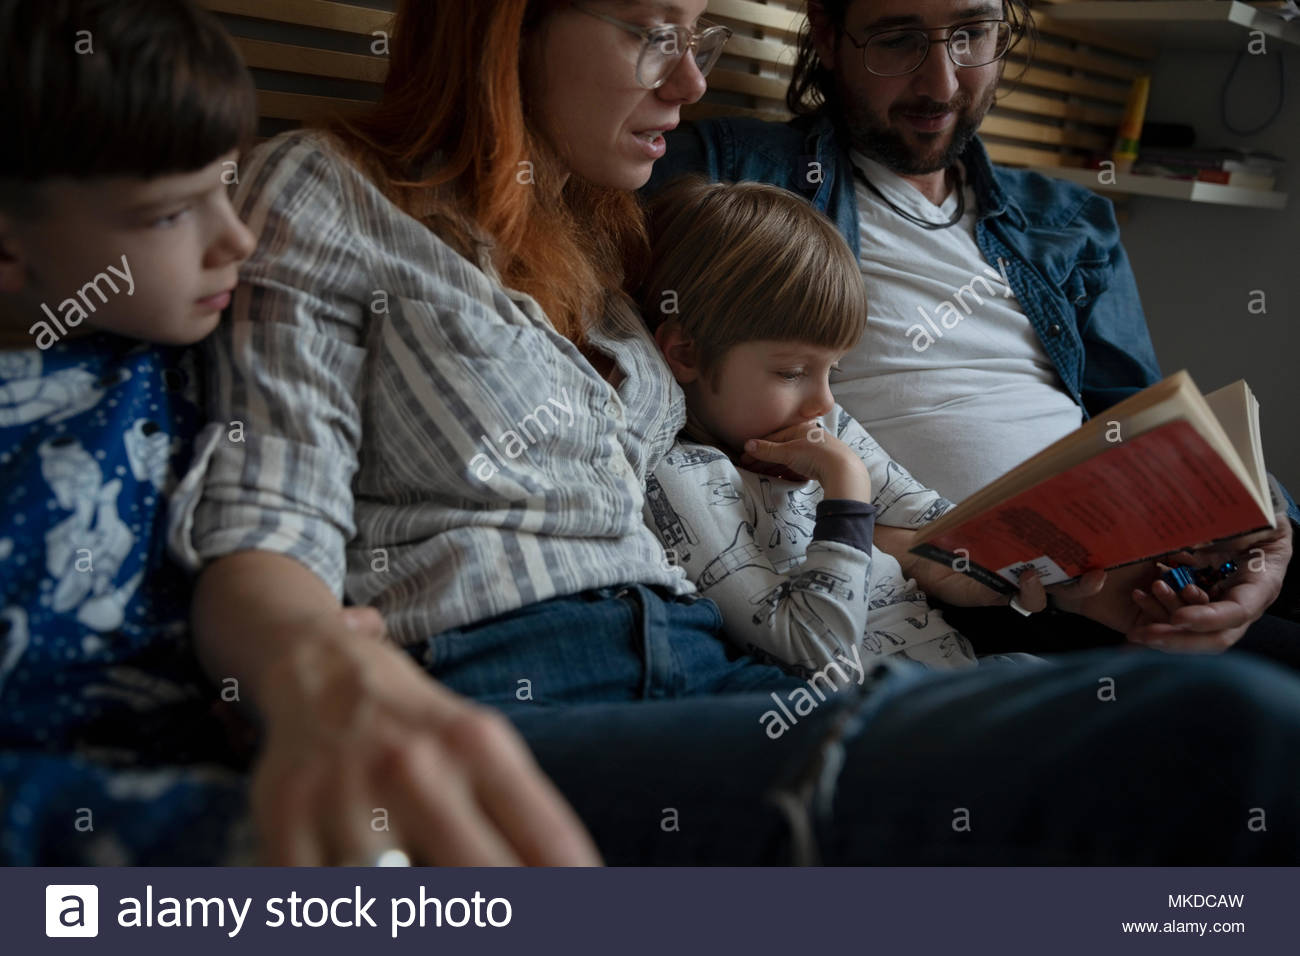 Family reading bedtime story book - Stock Image